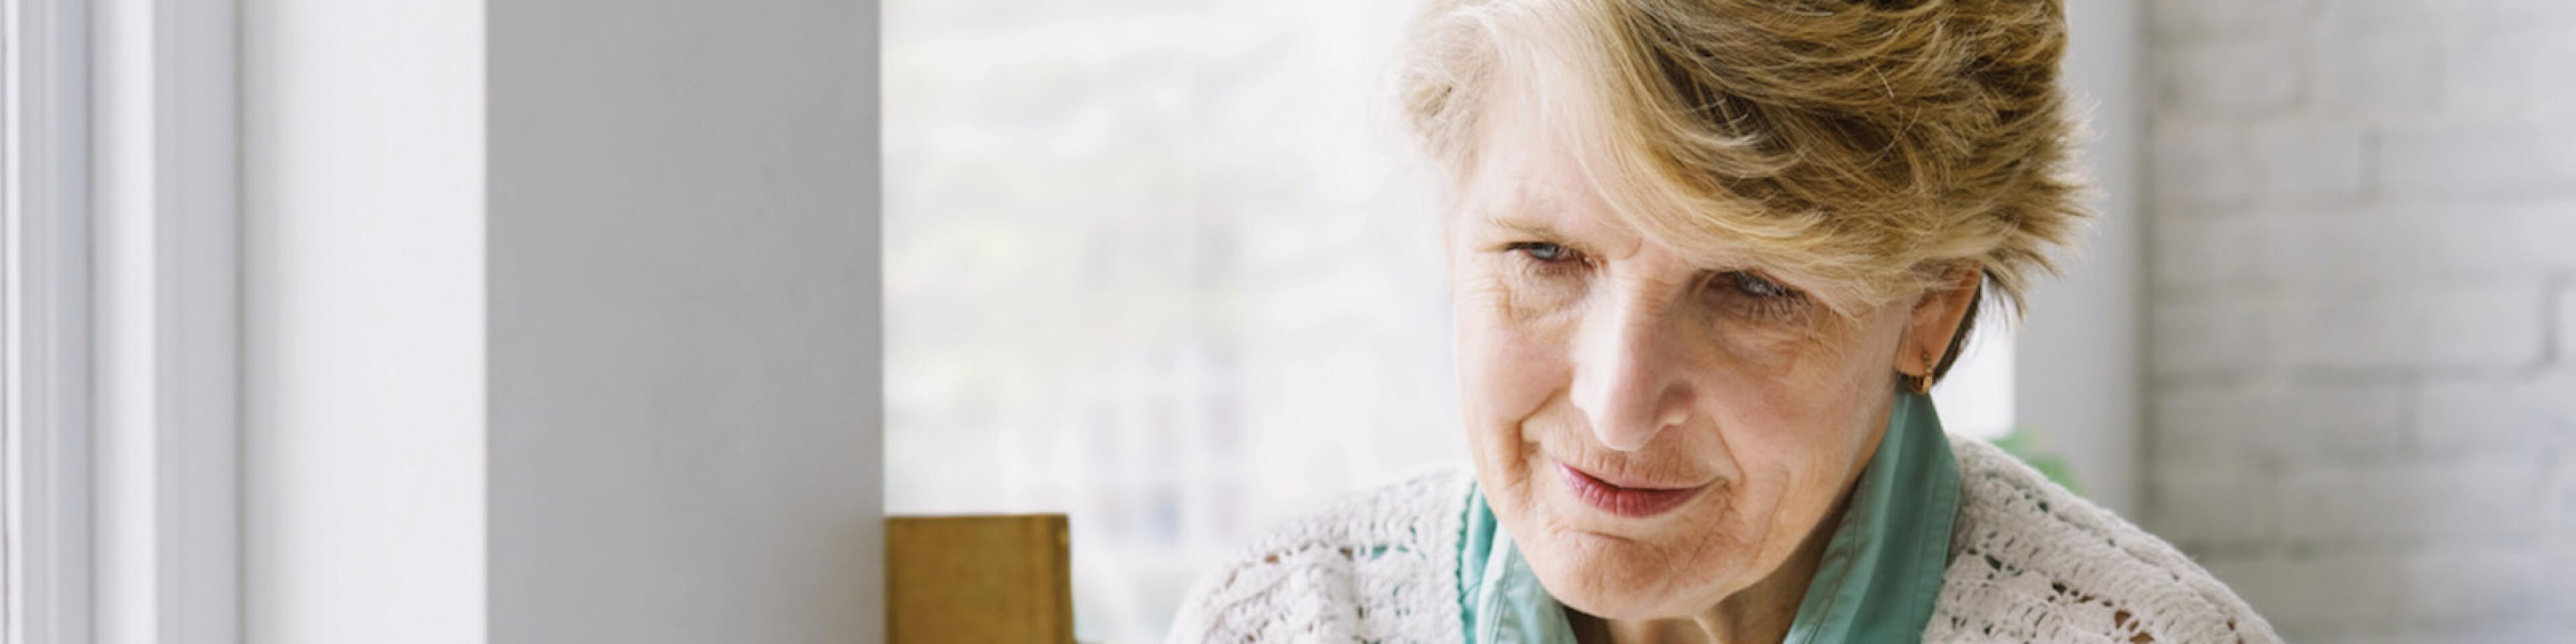 Older female patient thinking about her treatment options